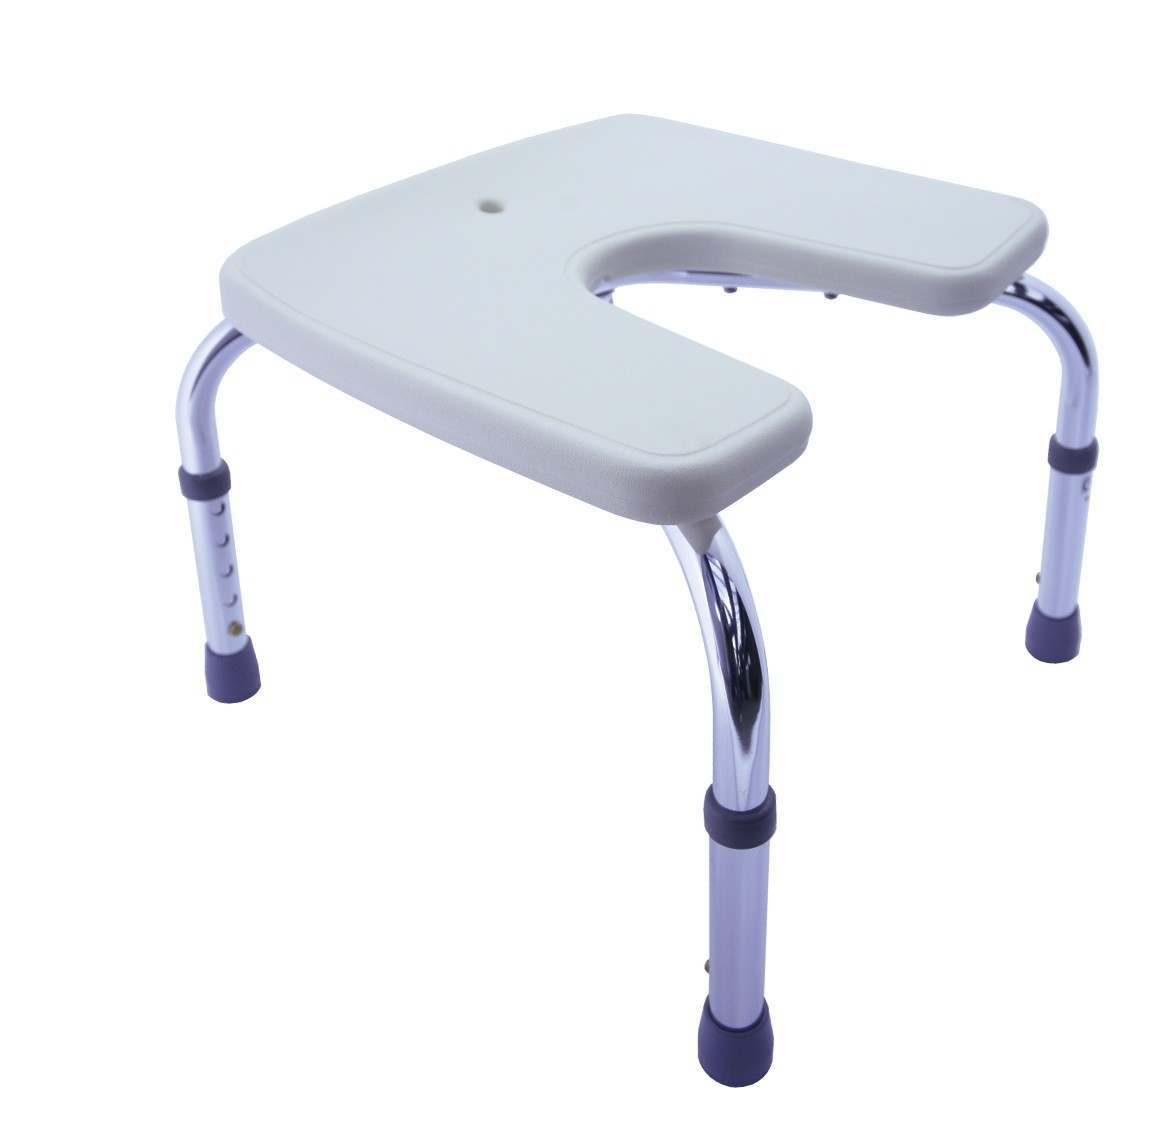 U Shape Bath Shower Seat   Benches, Seats U0026 Stools   Bathing U0026 Bathroom Aids